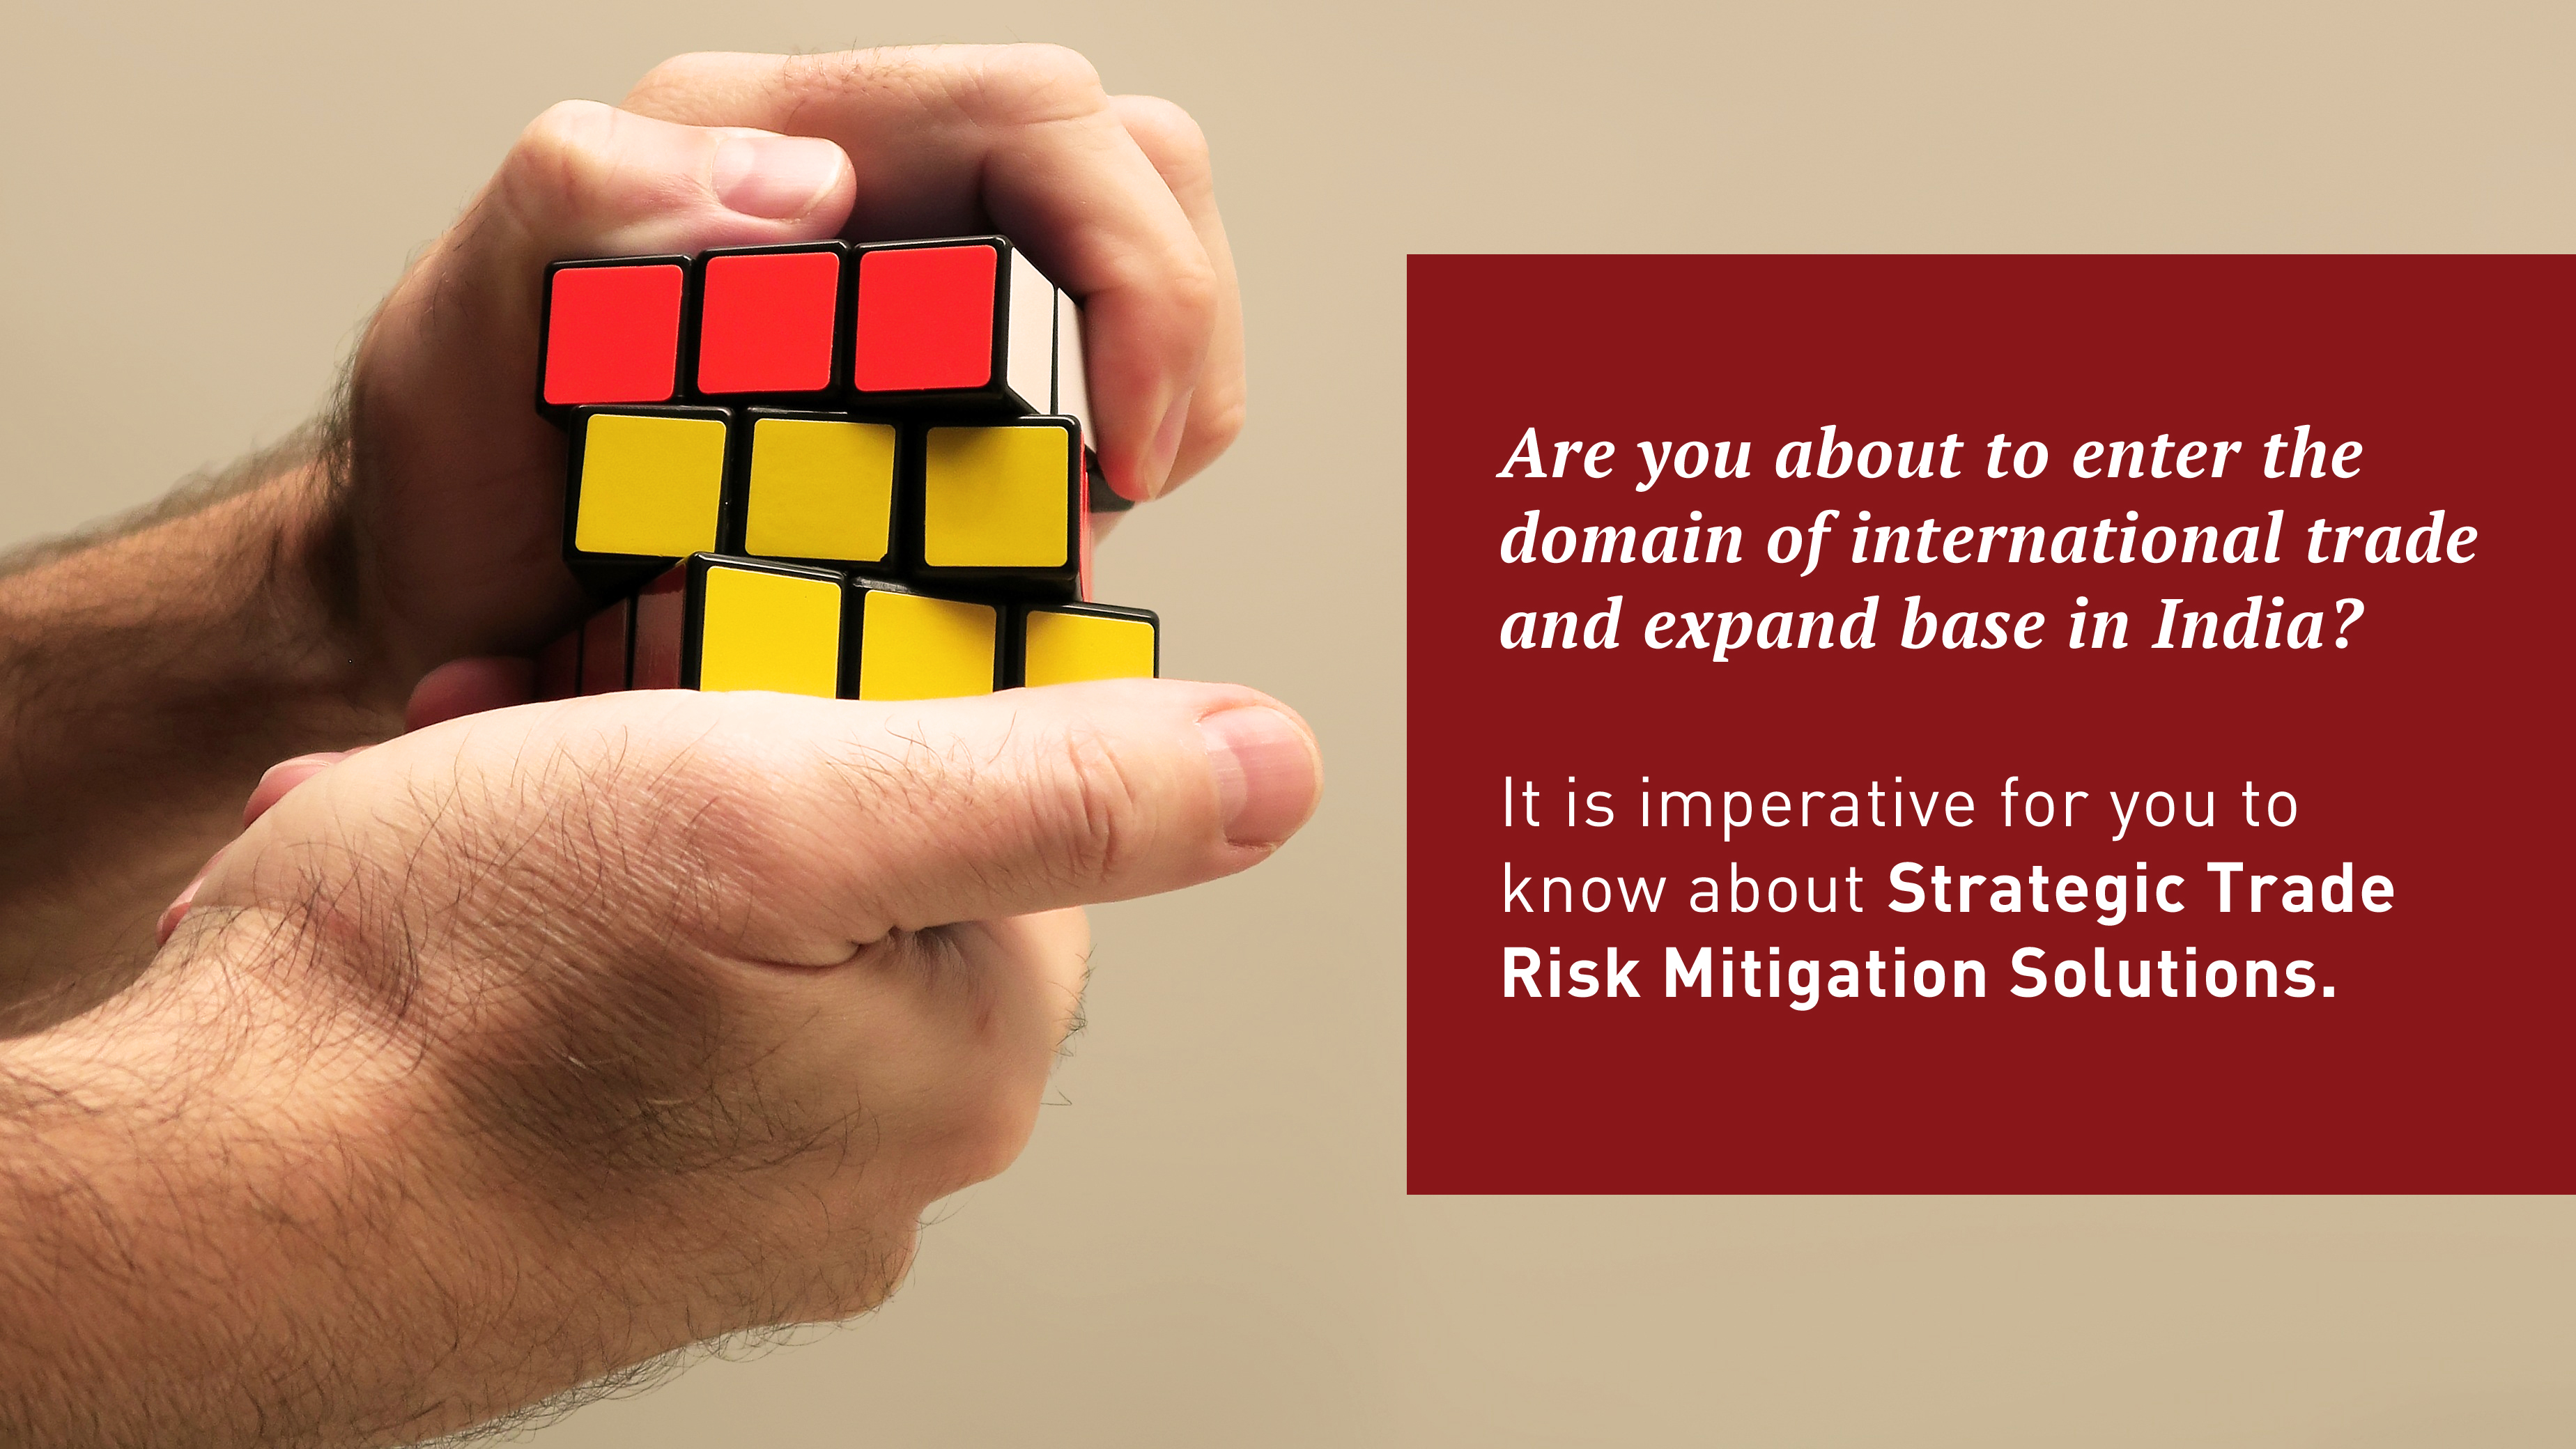 Strategic Trade Risk Mitigation Solutions